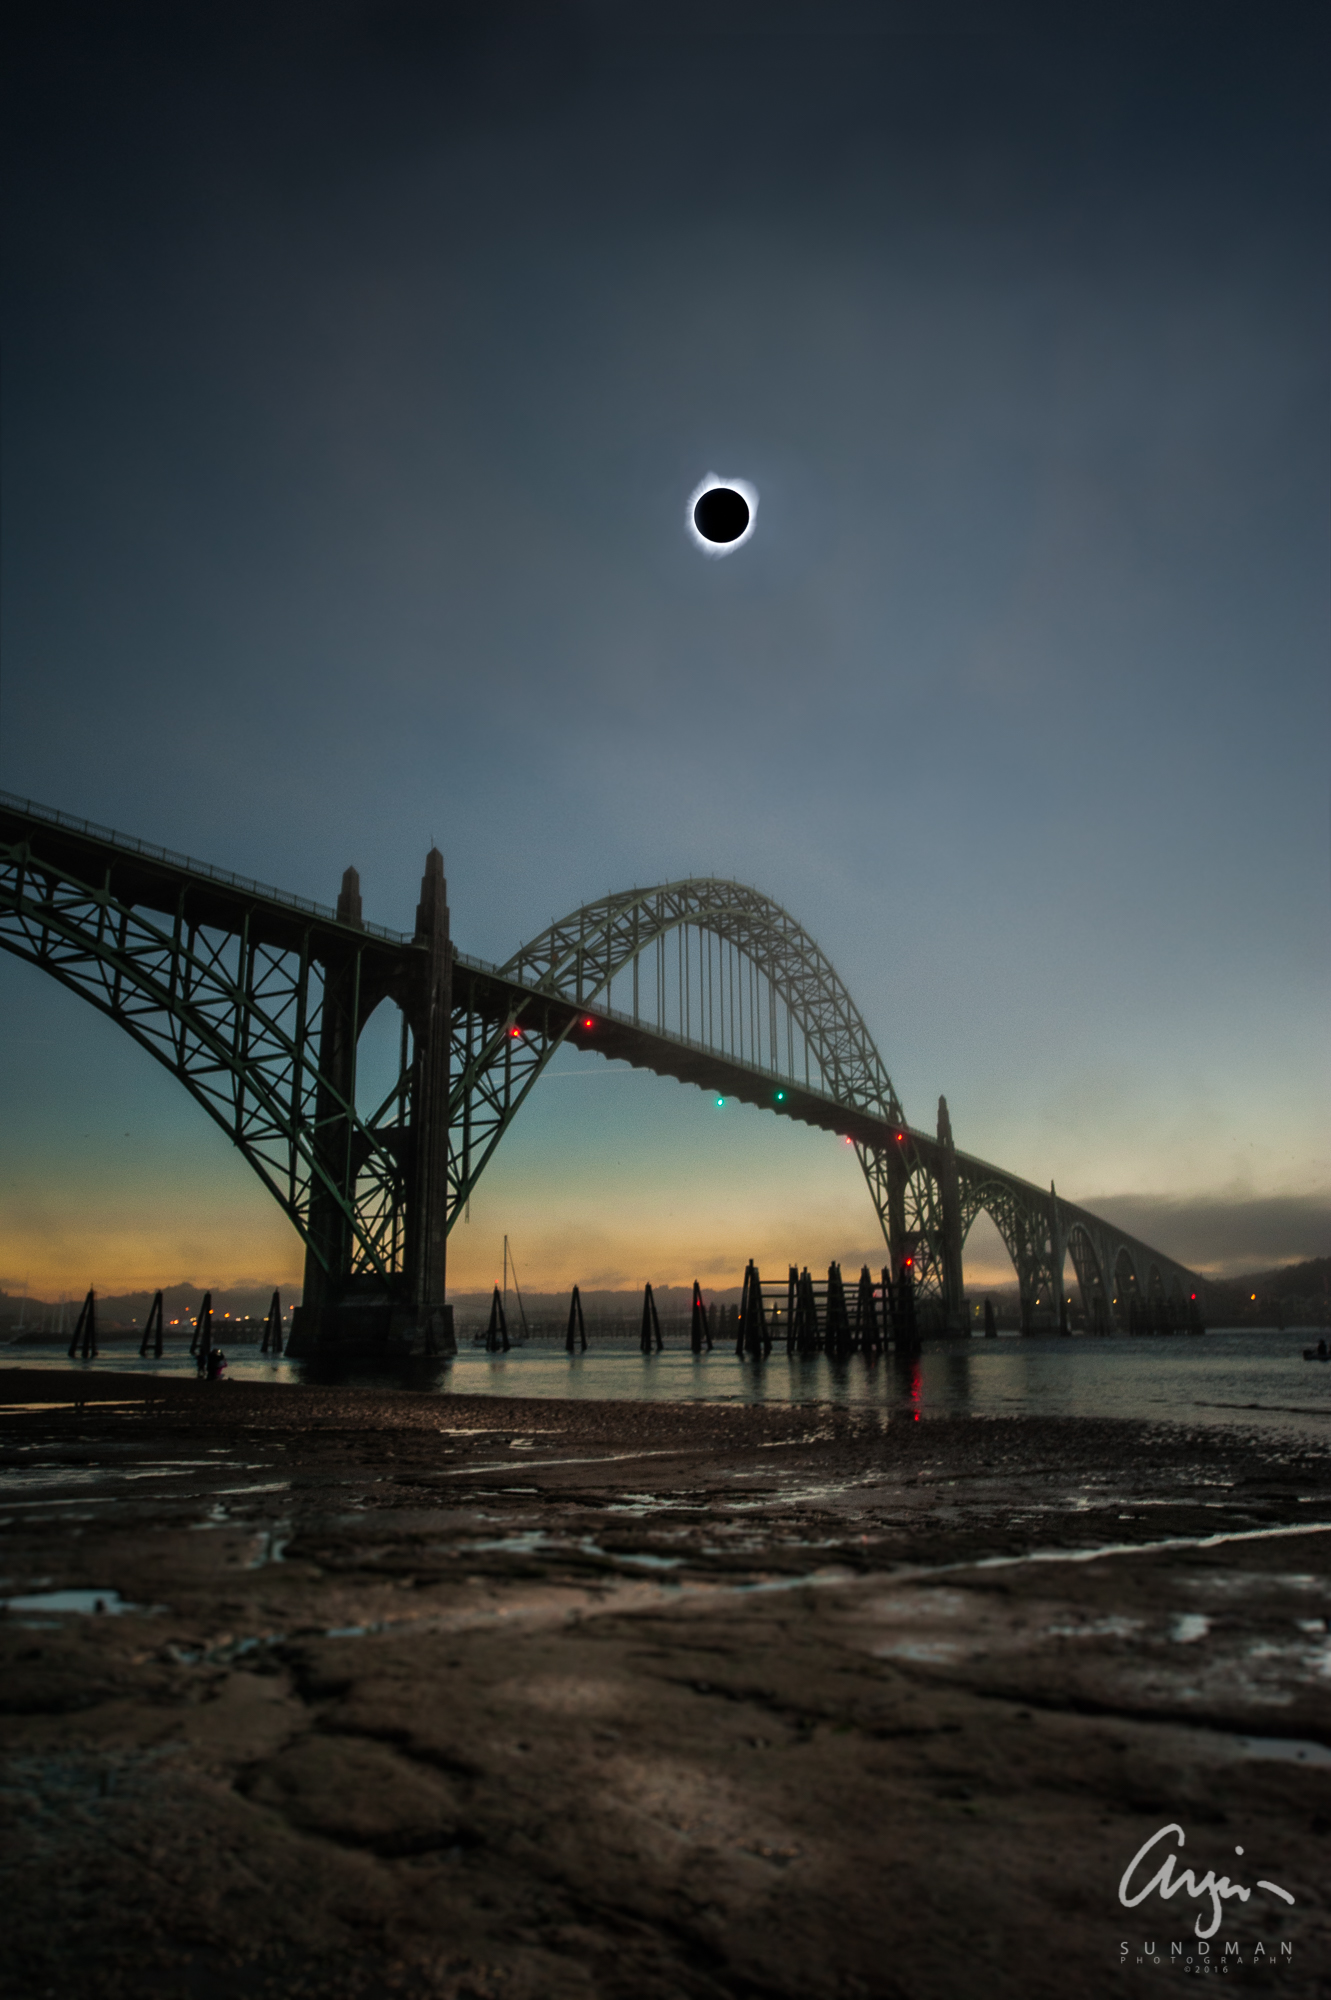 Eclipse makes US Landfall. Totality over Yaquina Bay Bridge